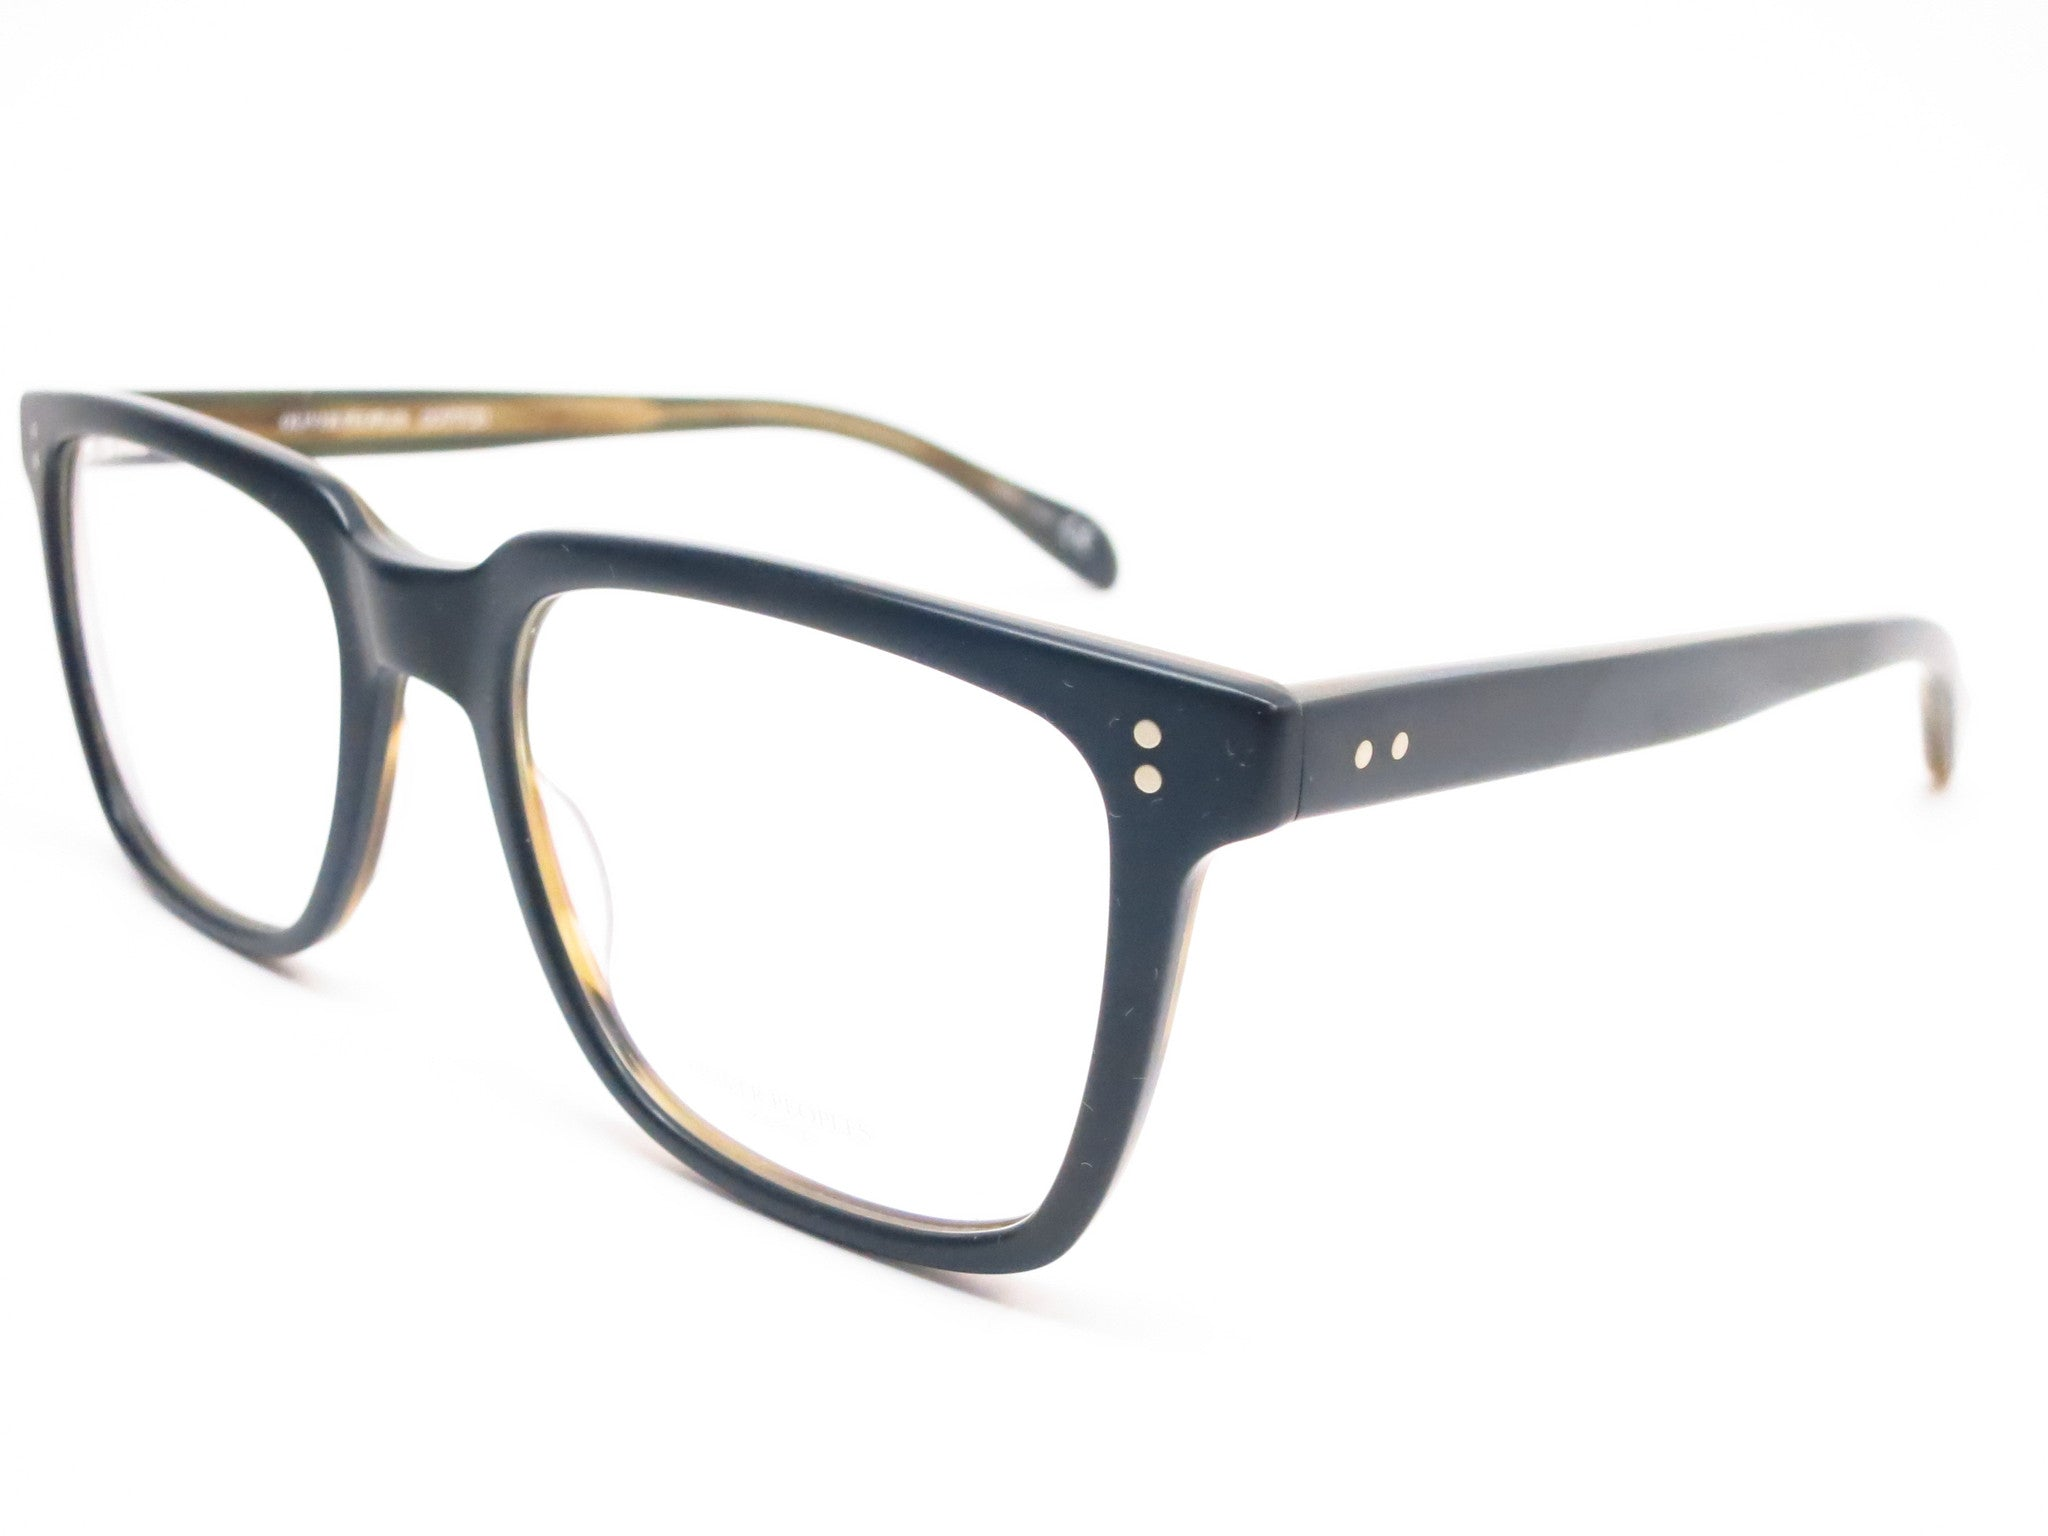 b606fcf0830 Oliver Peoples NDG OV 5031 1282 Matte Black   Olive Tortoise Eyeglasses -  Eye Heart Shades ...